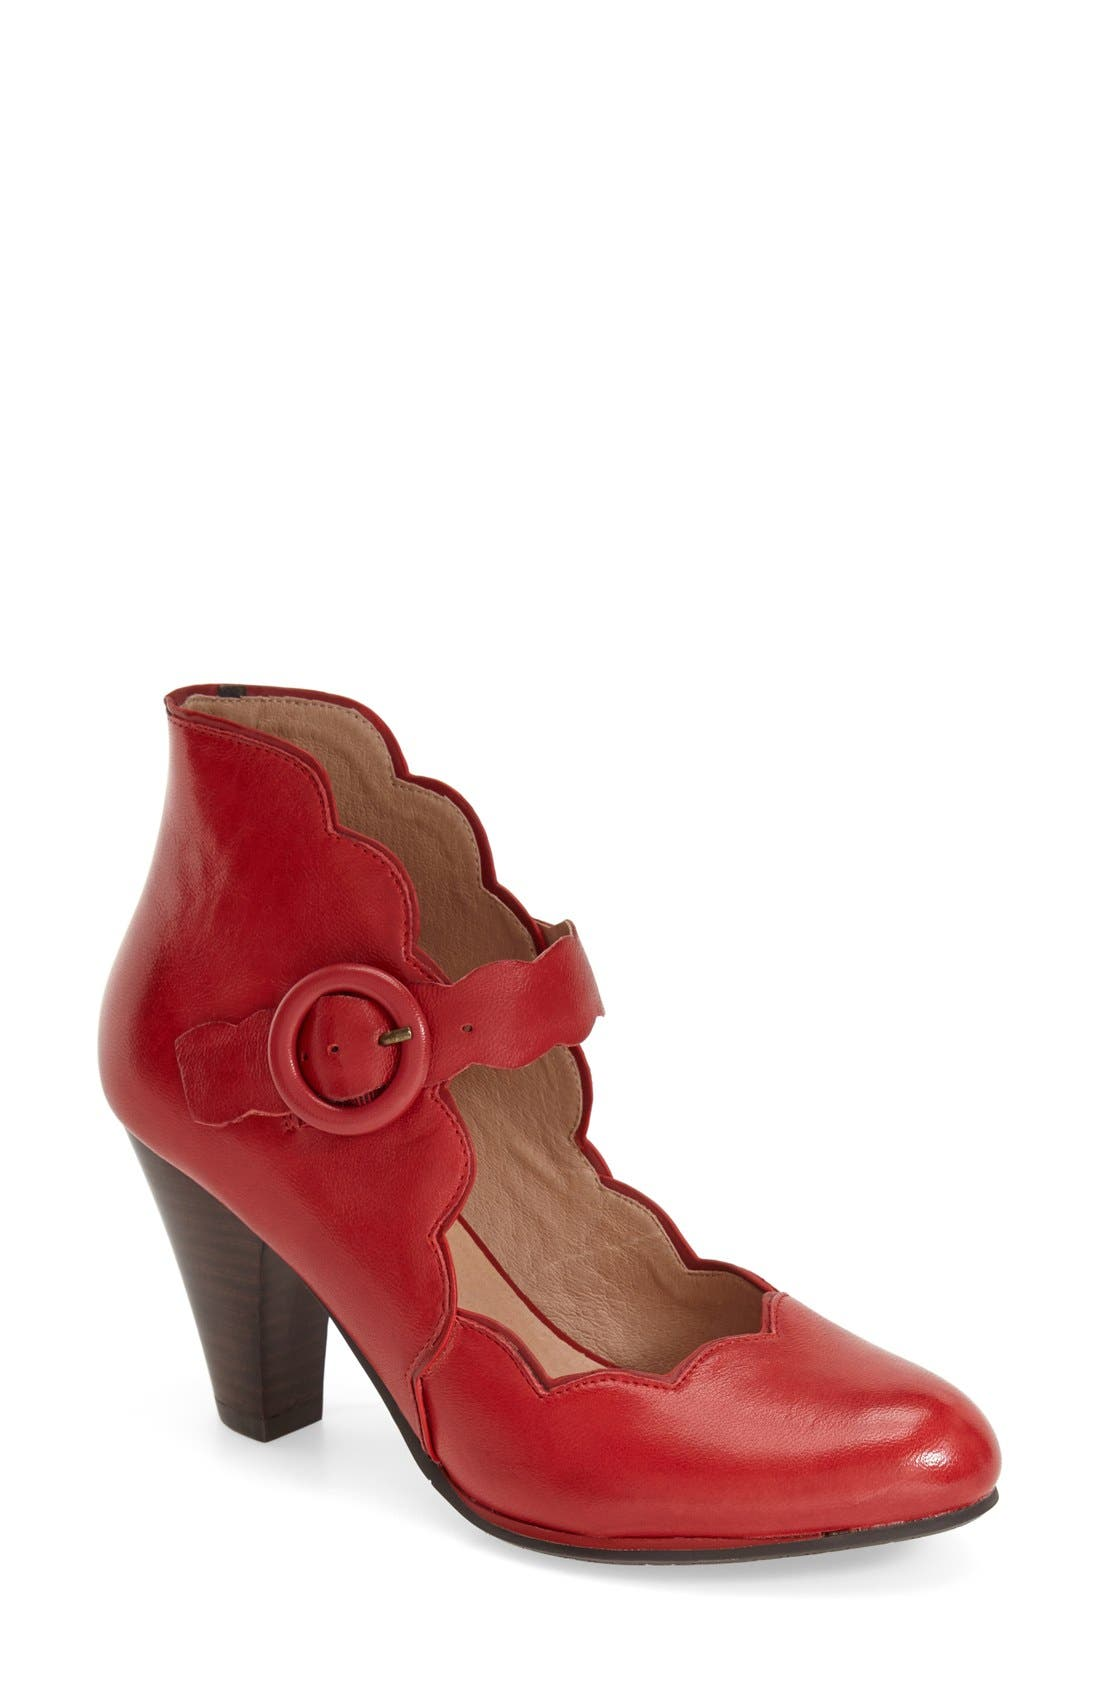 Main Image - Miz Mooz Footwear 'Carissa' Mary Jane Pump (Women)